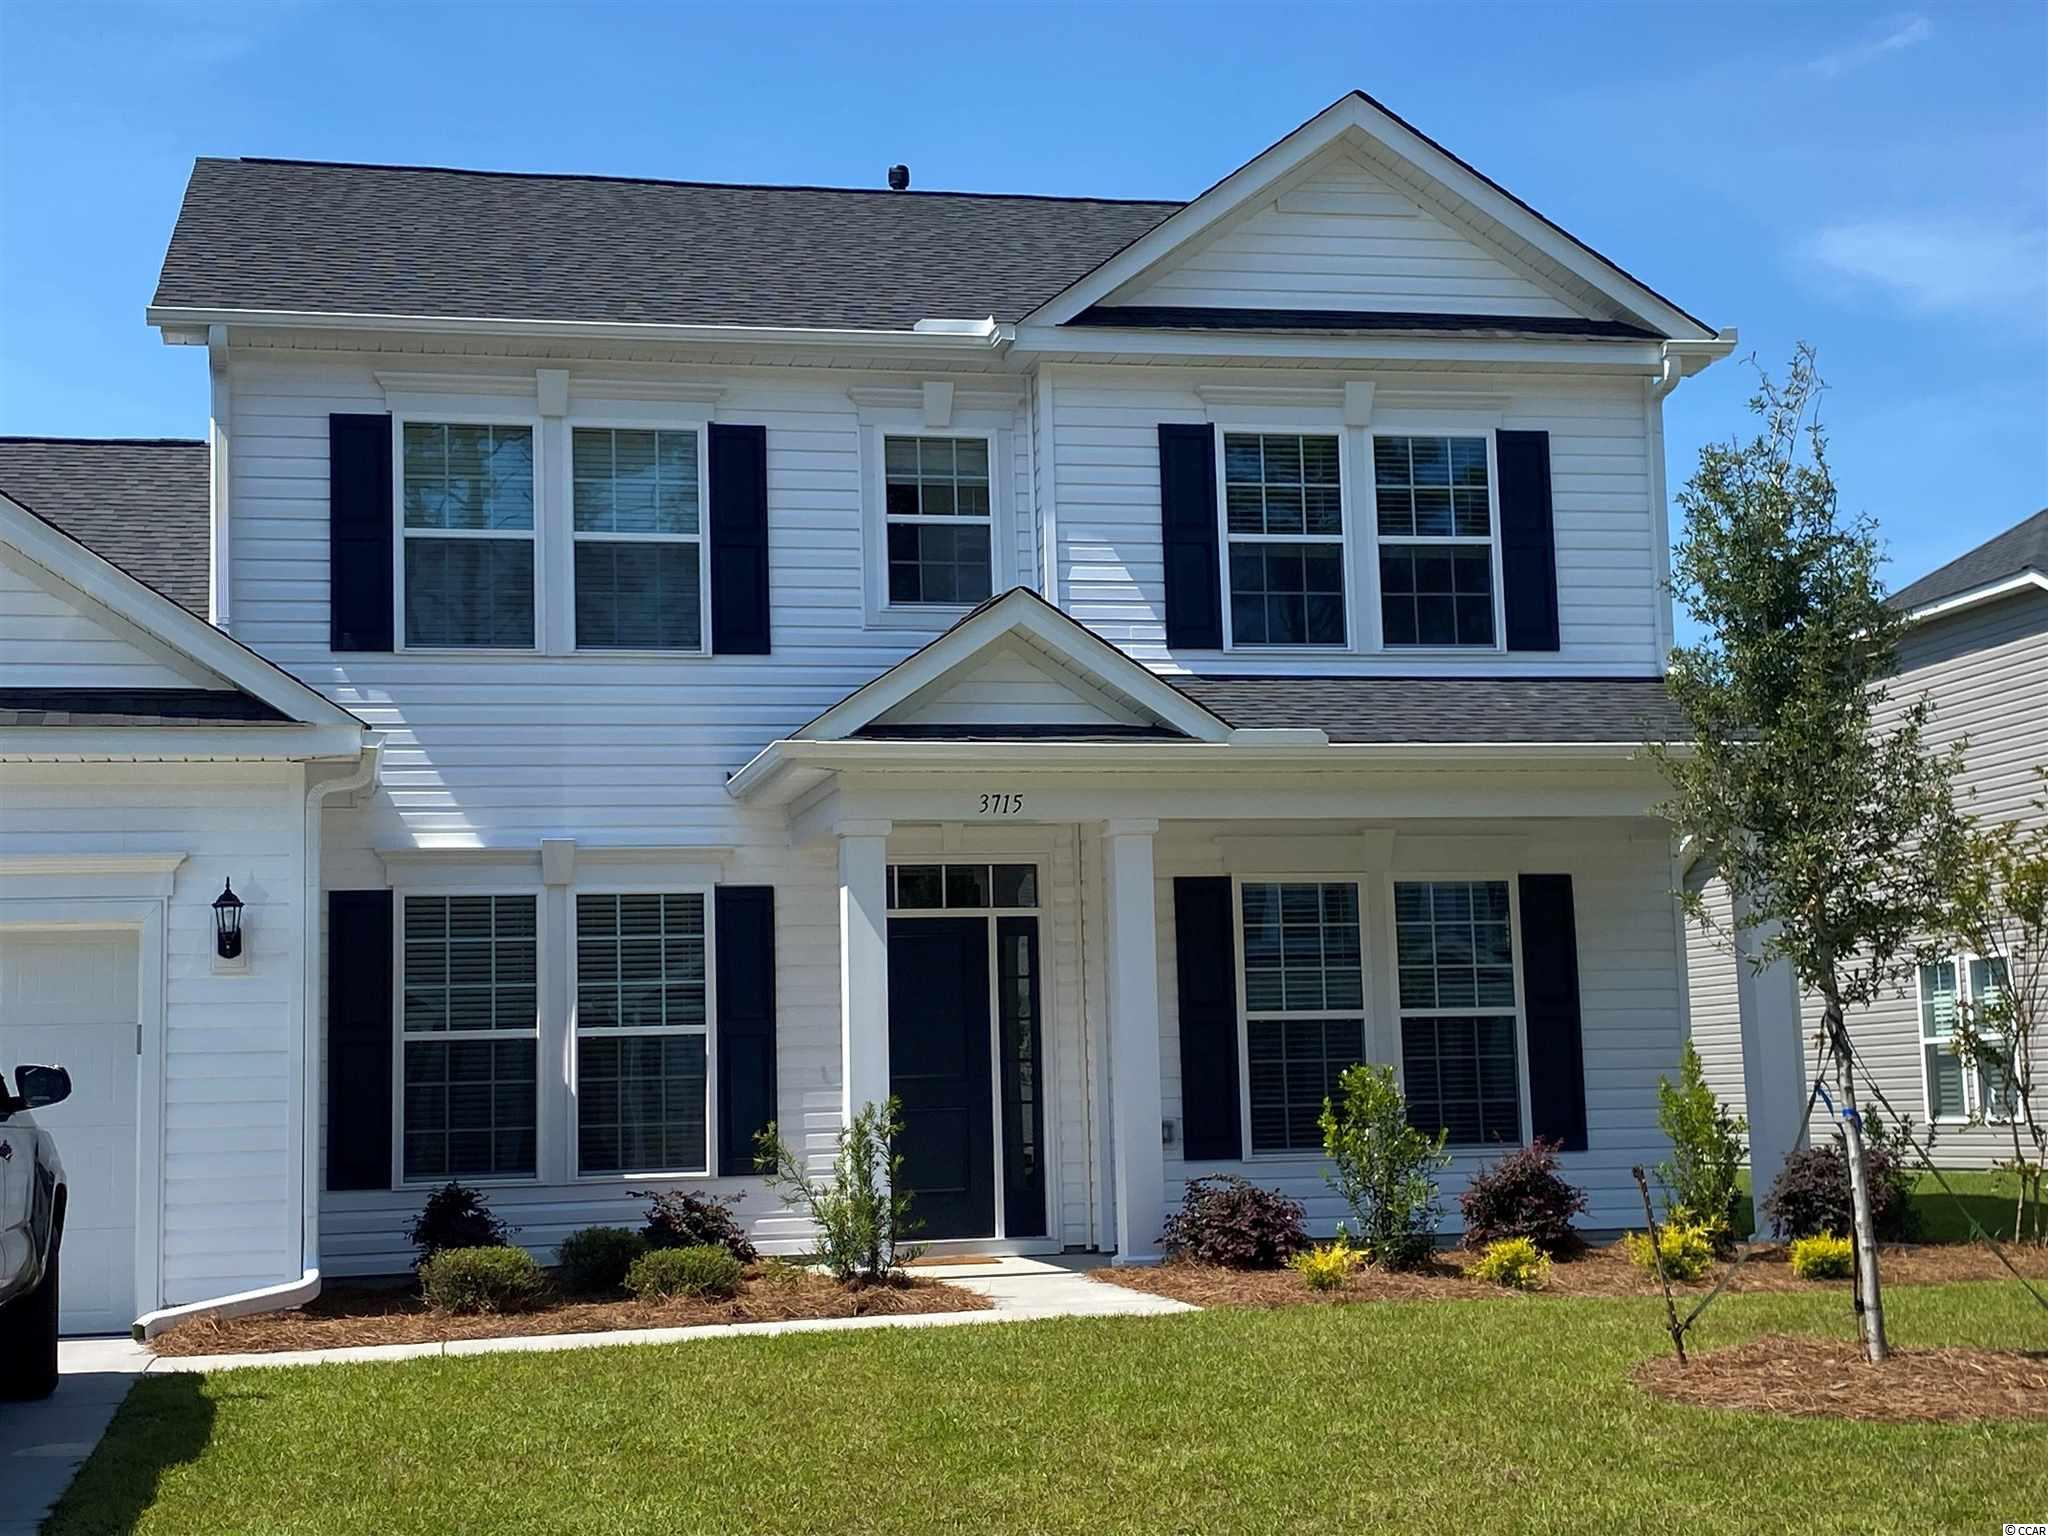 Park Pointe is a new Natural Gas Community.  Located across from the North Myrtle Beach Park and Sports Complex and just off the Robert Edge Parkway, Park Pointe is convenient to everything the north end of the Grand Strand has to offer. Surrounded by nature preserve, Park Pointe offers a tranquil, inviting backdrop for your new home.  Park Pointe allows easy access to major highways like Hwy 31, Hwy 90, Hwy 17 and N. Myrtle Beach's Main Street. You can live minutes to beautiful beaches, fabulous shopping, championship golf, great restaurants, amazing night-life, first-class medical facilities and other local attractions...in other words, it's everything you're looking for in a Coastal Carolina location.  With 13 open and uniquely designed plans ranging from 1360 heated sq. ft. to over 3000 heated sq. ft., these well-appointed homes offer a tremendous selection of options.  Next door you'll find the North Myrtle Beach Park and Sports Complex.  The park is equipped with a wide selection of amenities that will add value, fun, and comfort such as concessions, picnic shelters, playgrounds, an amphitheater, walking/bike trails, dog parks, a 25 acre lake for water activities, a 10 acre meadow and much more.  Enjoy everything that North Myrtle Beach and Little River has to offer when you make Park Pointe your place to make memories​​‌​​​​‌​​‌‌​​​‌​​‌‌​​​‌​‌​​​‌‌​ happen.